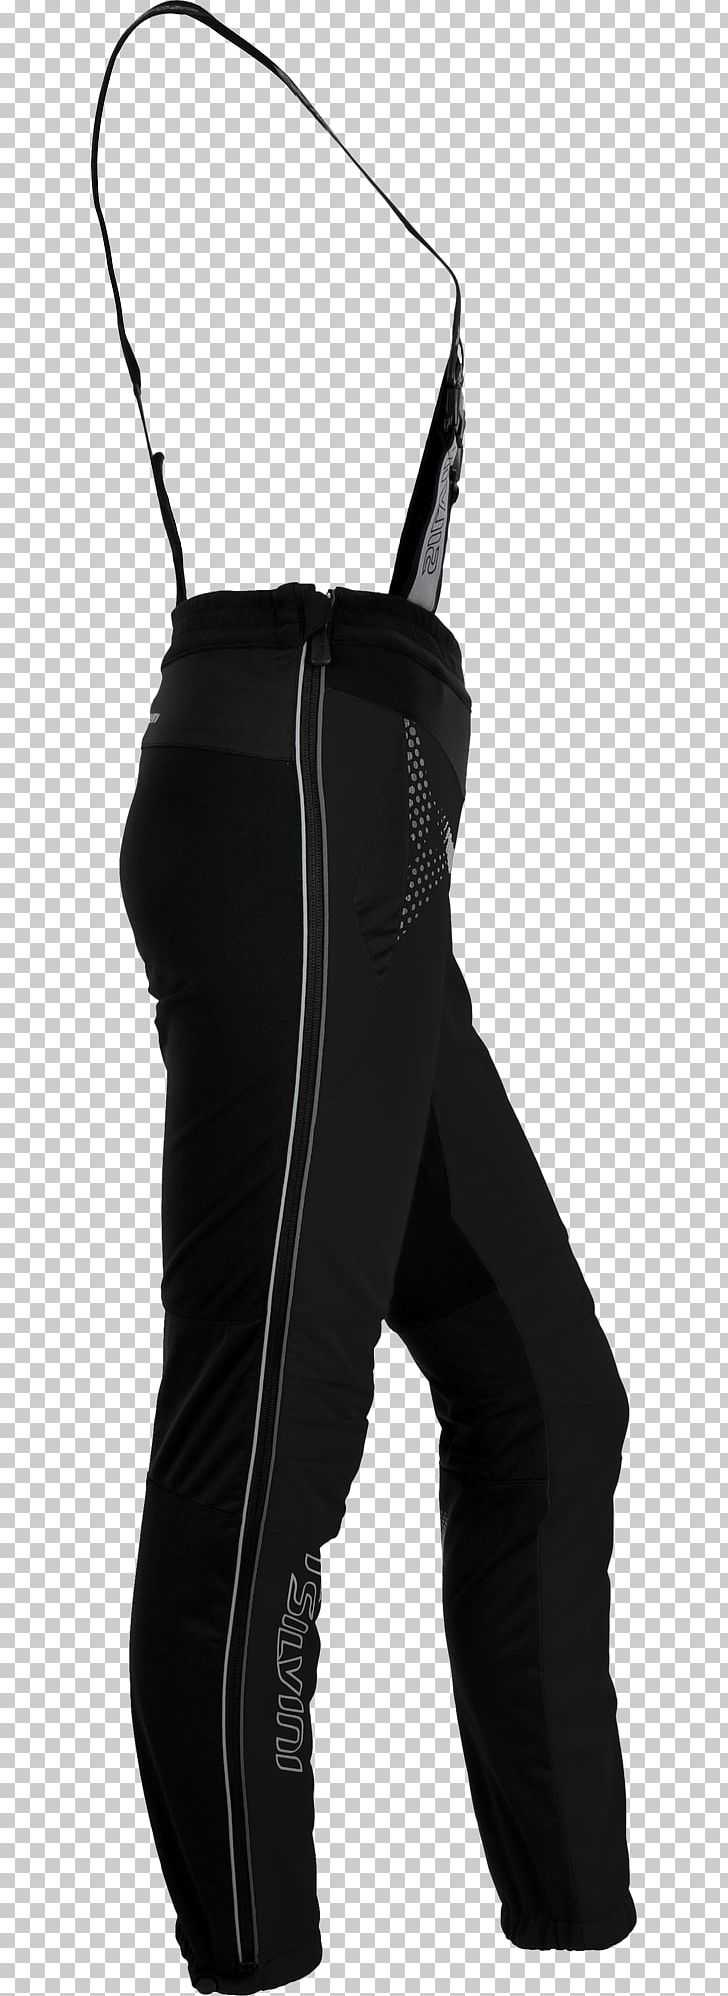 Pants Shoulder Tights Sportswear White PNG, Clipart, Black, Black And White, Black M, Joint, Others Free PNG Download